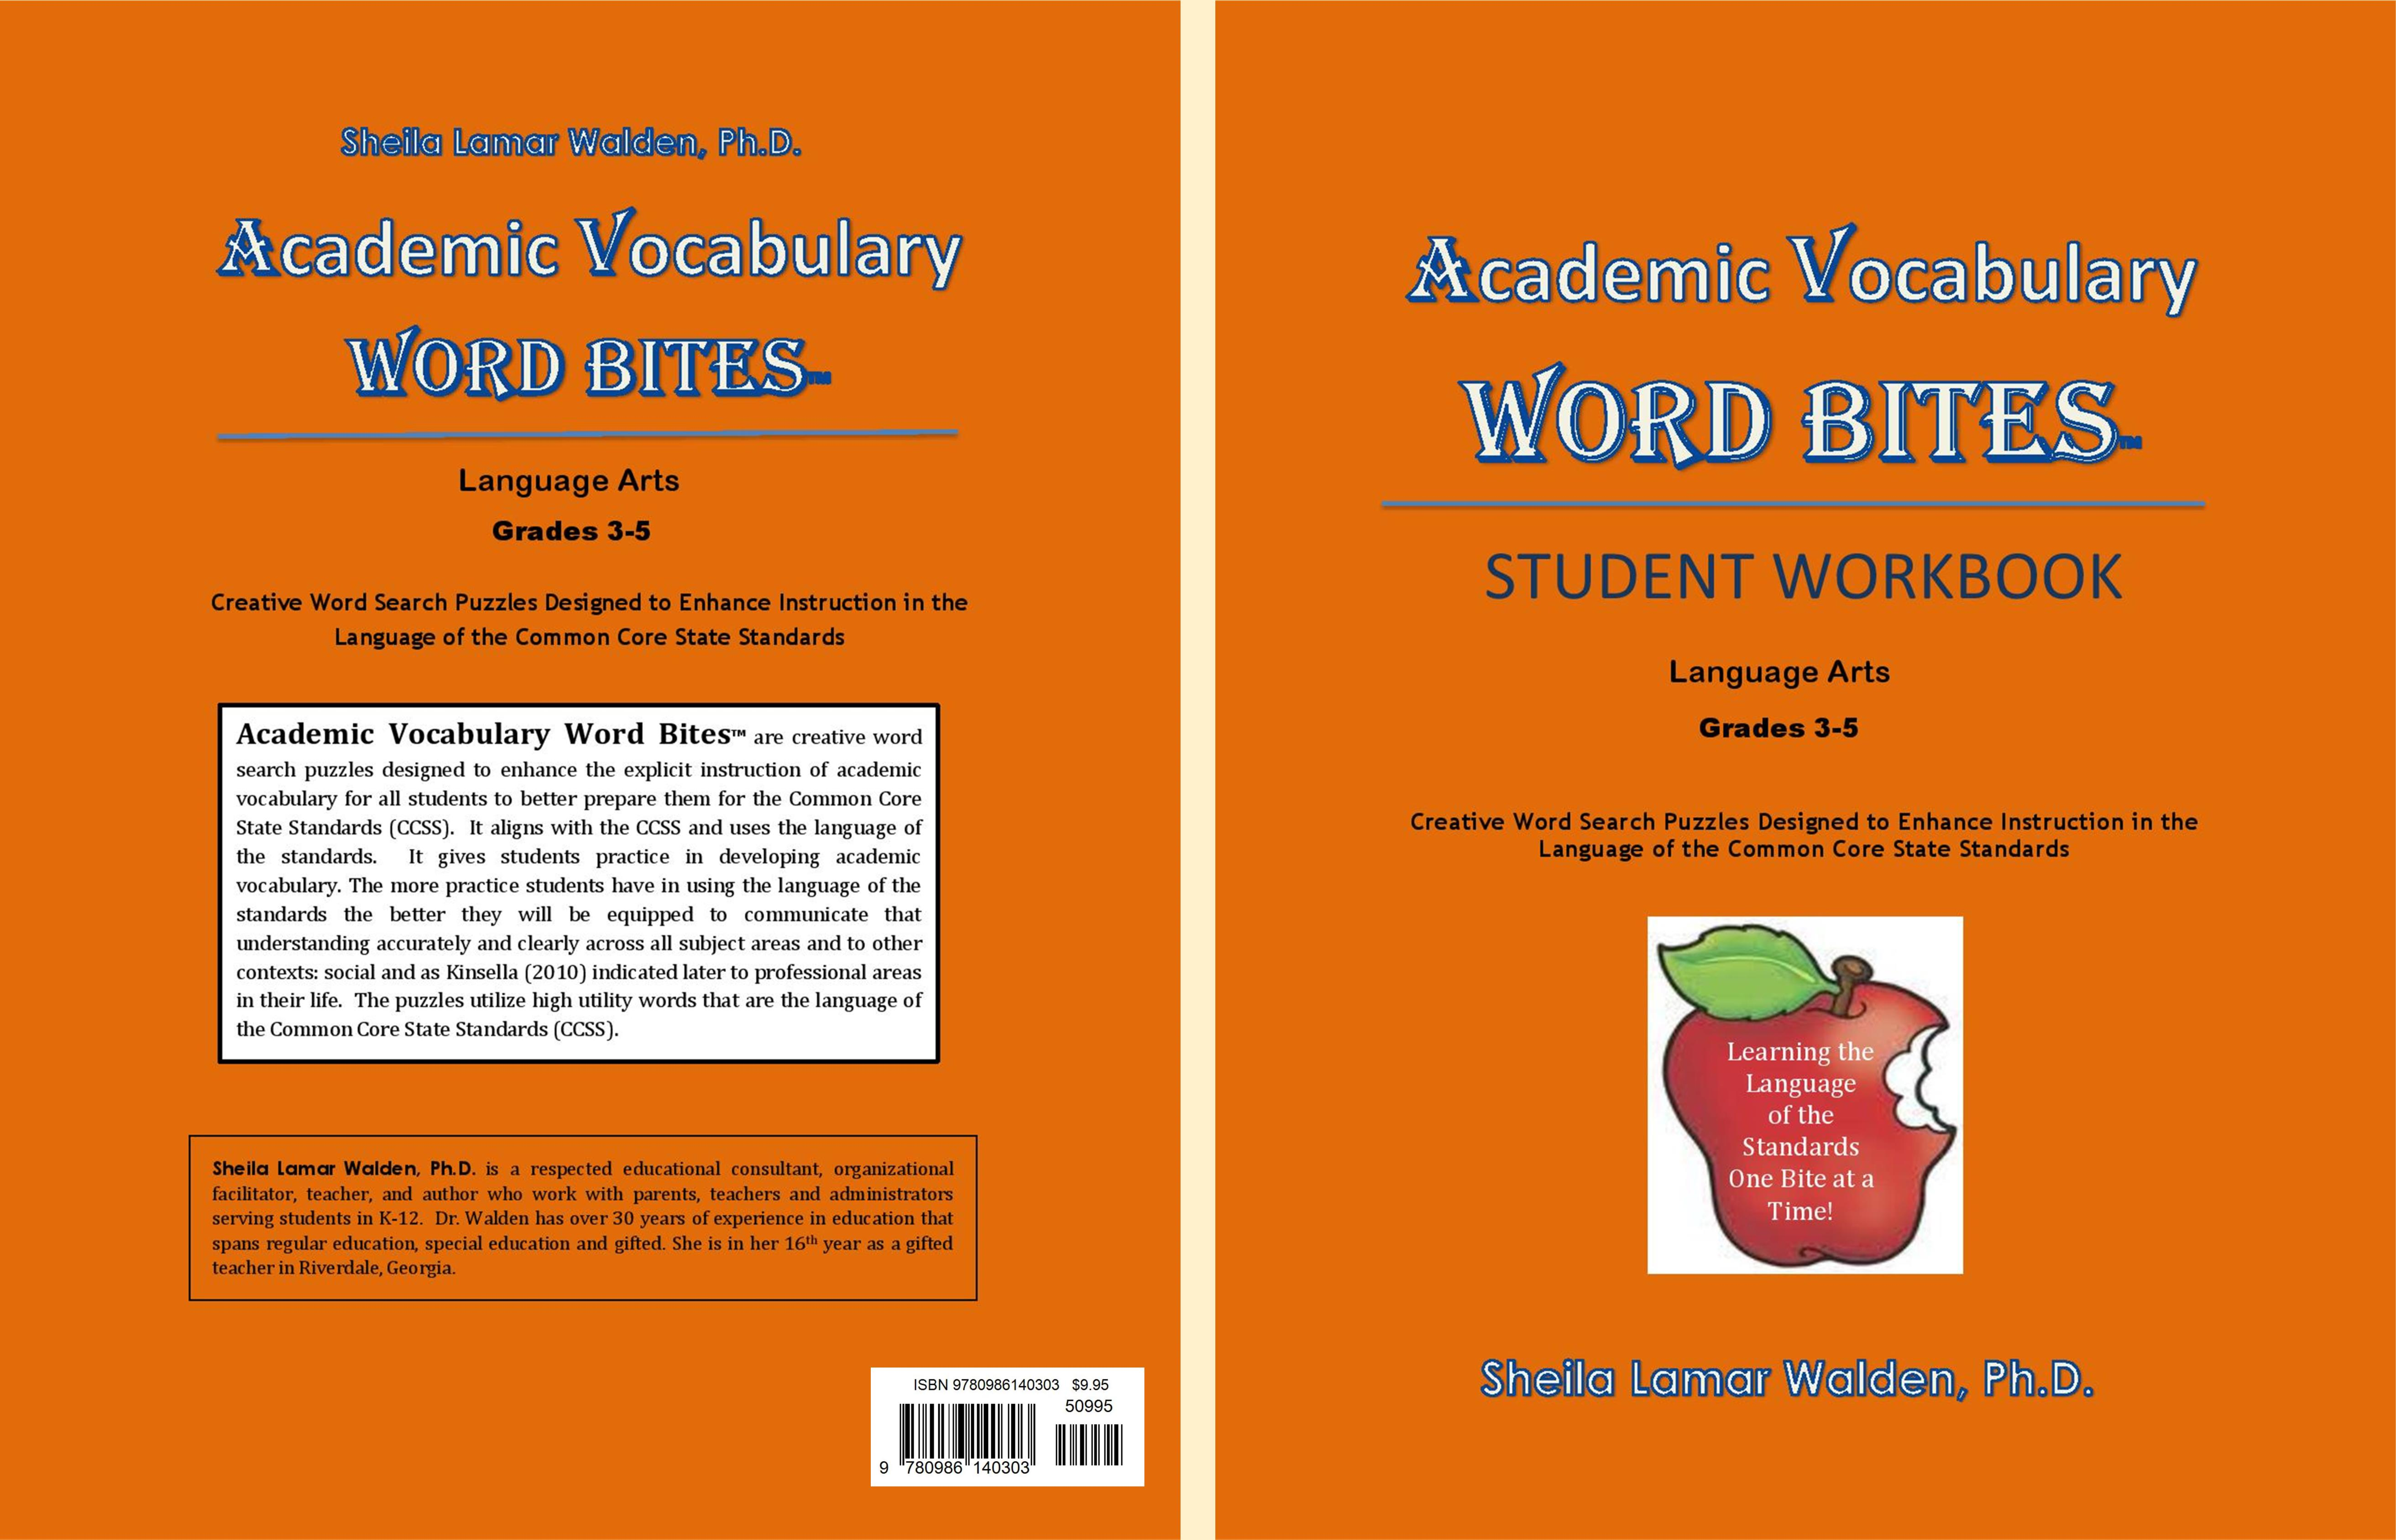 Academic Vocabulary Word Bites Student Workbook cover image